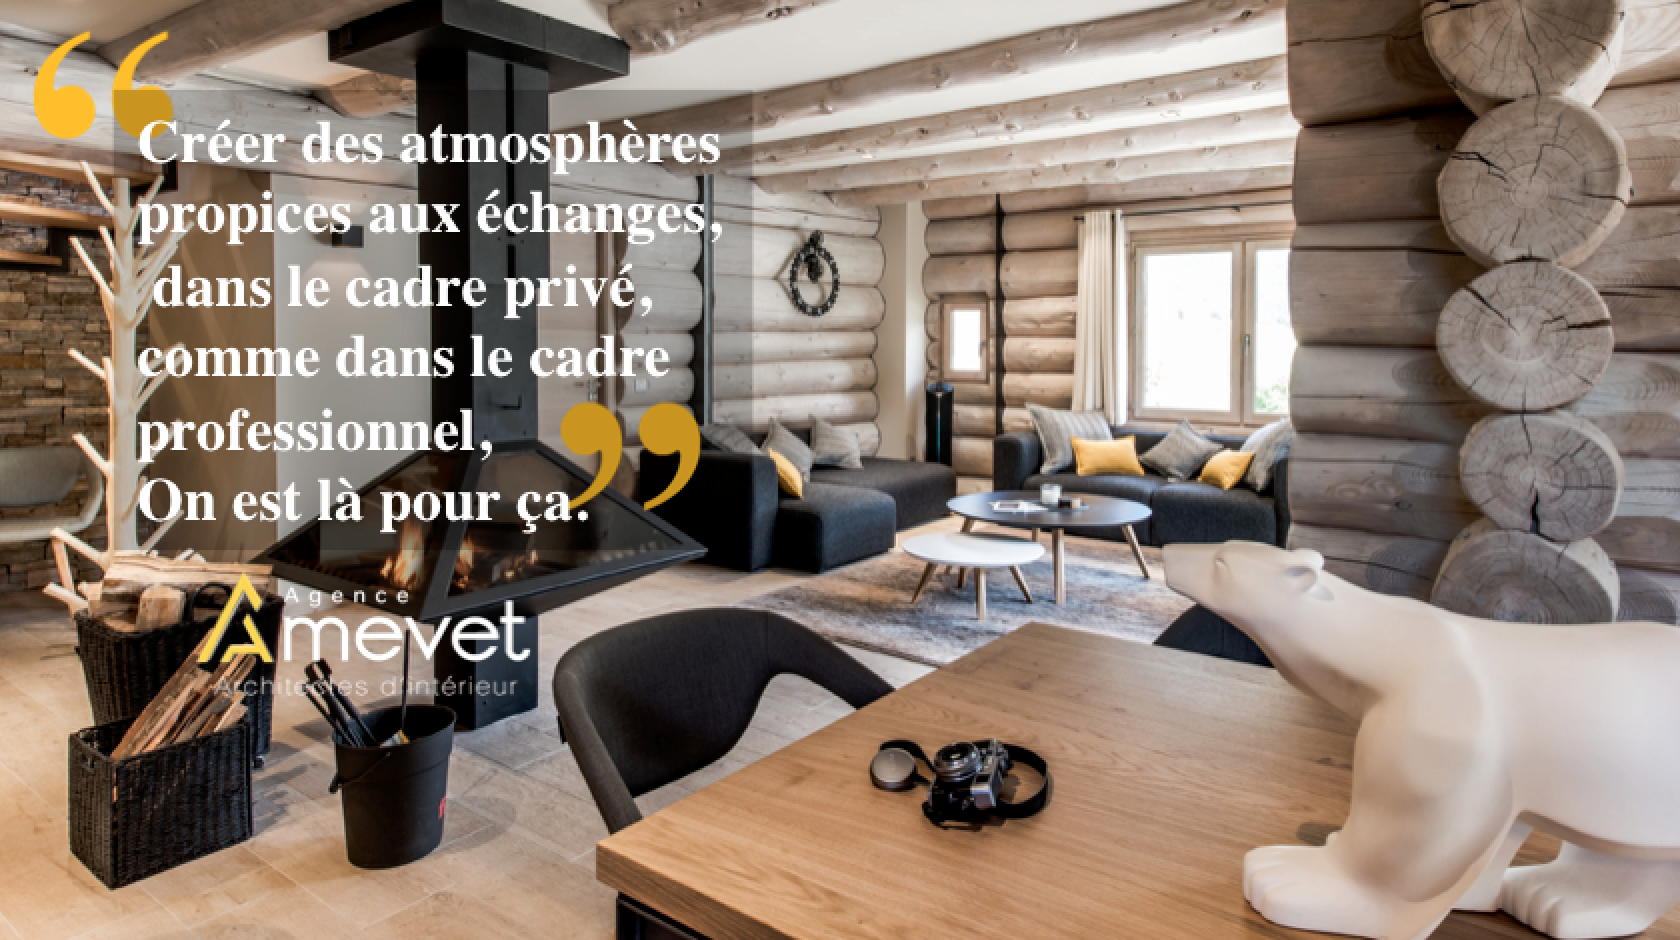 AMEVET Architecte Interieur Designer Savoie Chambery Rhone Alpes 73  Conception Espace Amenagement Conseil Decoration Renovation Restructuration